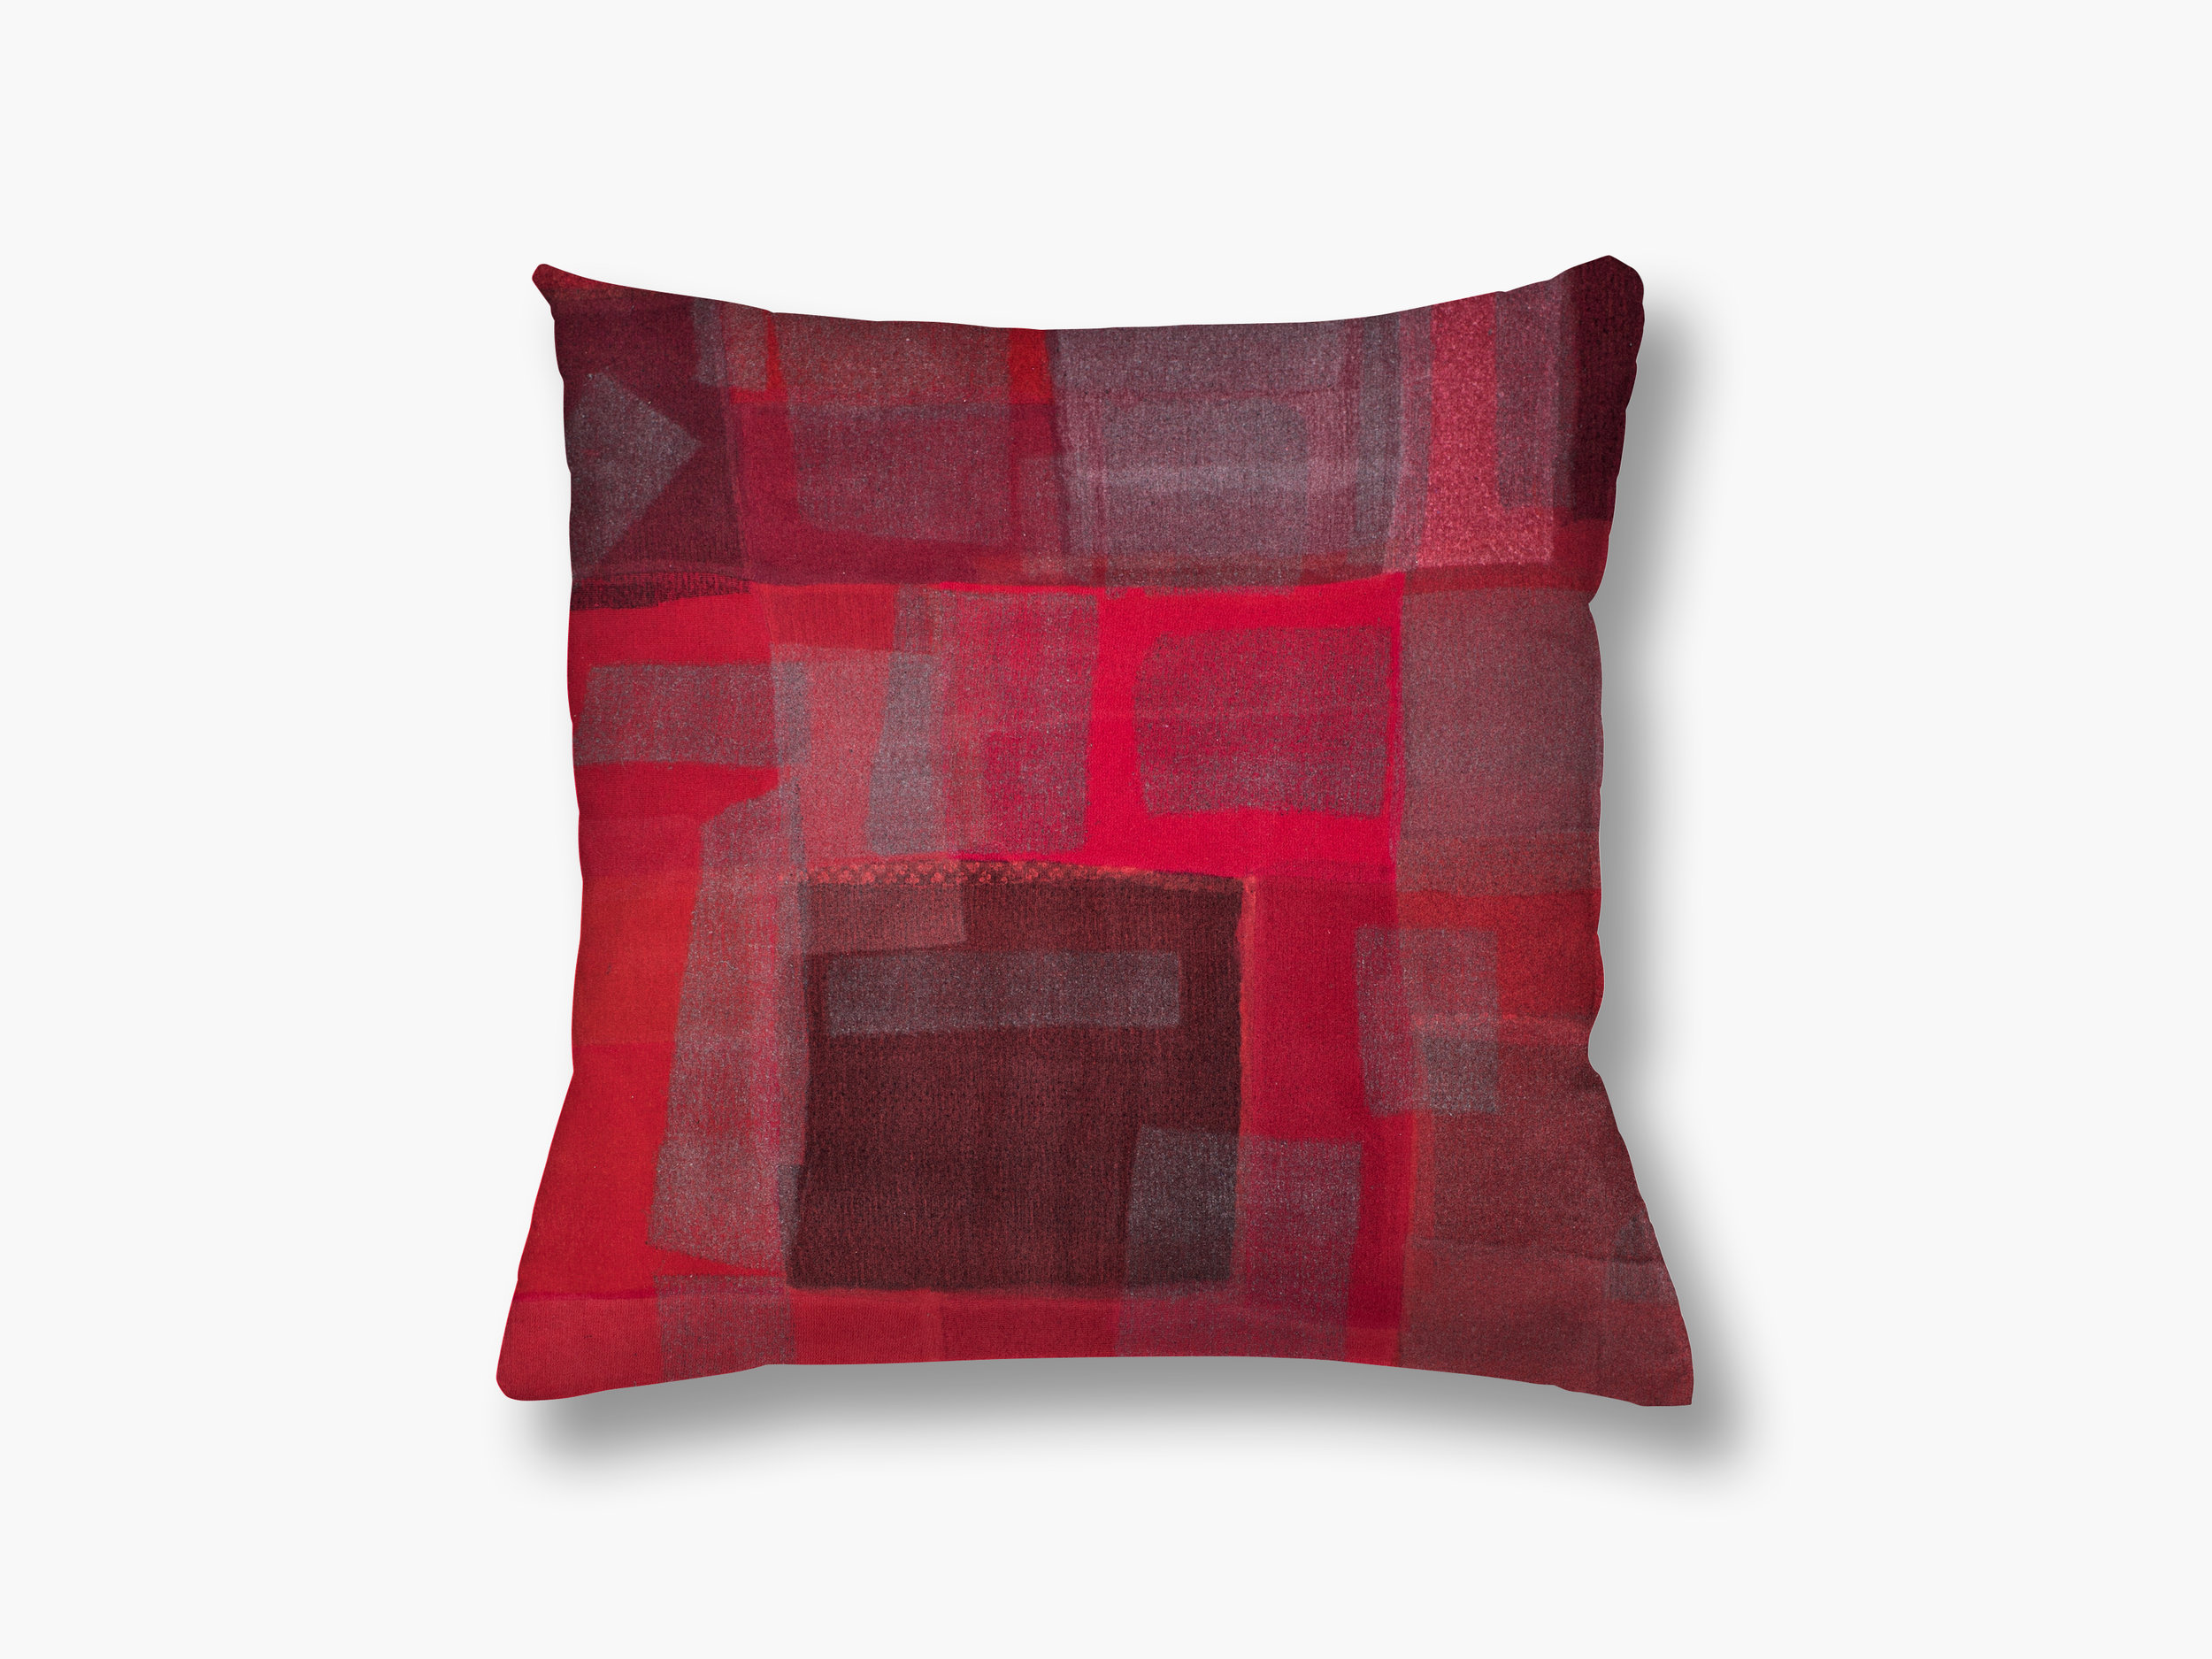 EF_Web_Lo_Pillows_red.jpg